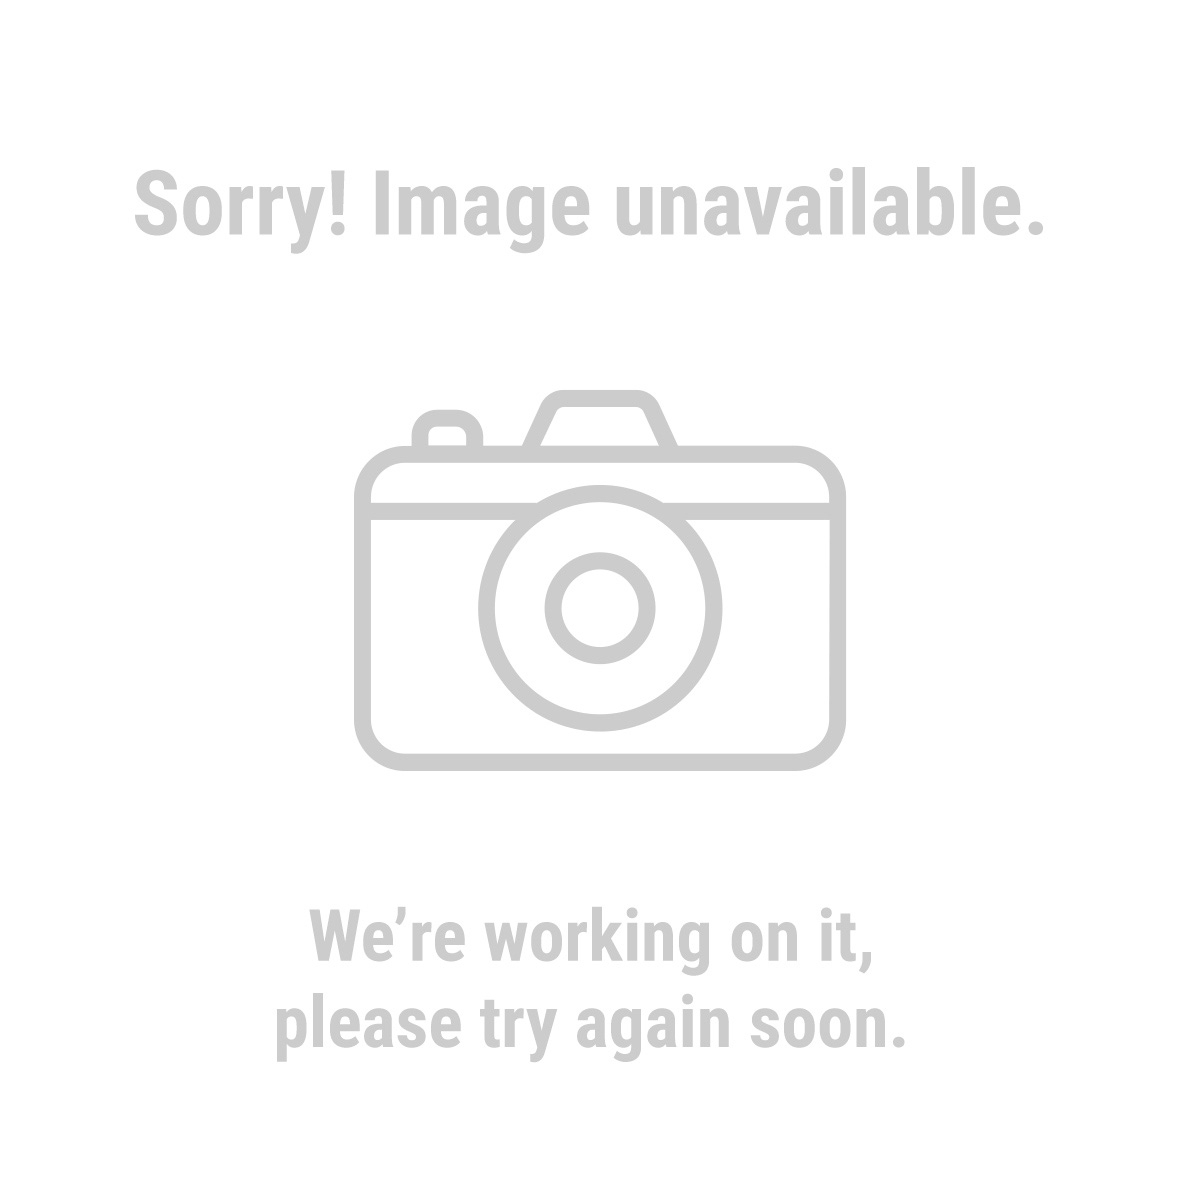 Central Pneumatic 68067 1.8 Horsepower, 26 Gallon, 150 PSI Oilless Air Compressor